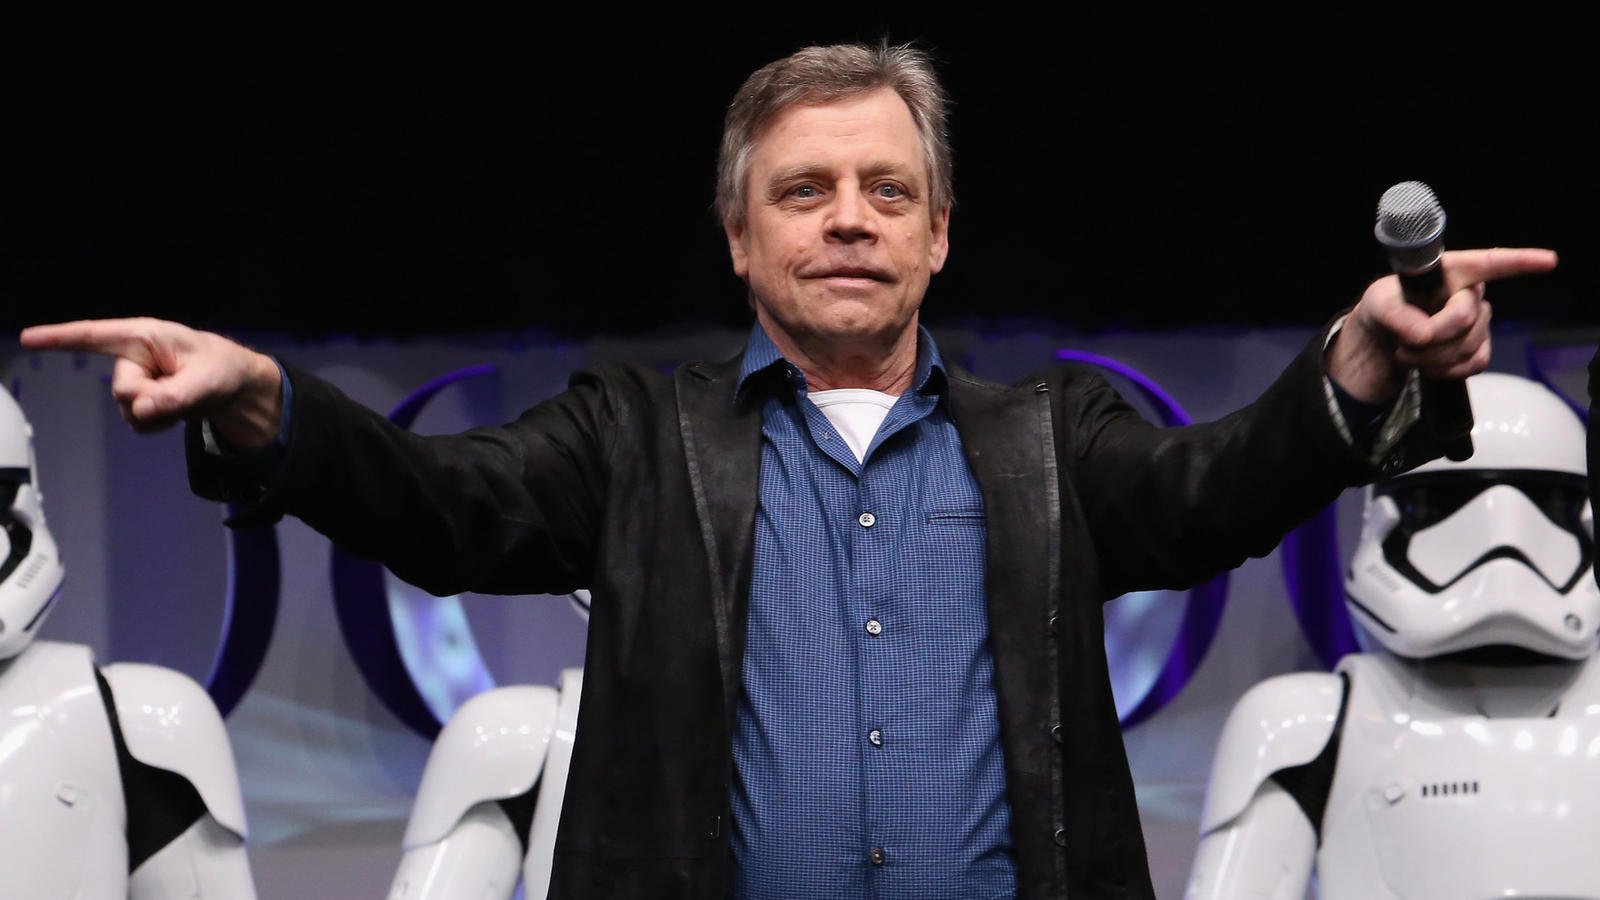 """Mark Hamill at the opening of """"Star Wars Celebration"""" in Anaheim in 2015. (Jesse Grant / Getty Images for Disney)"""